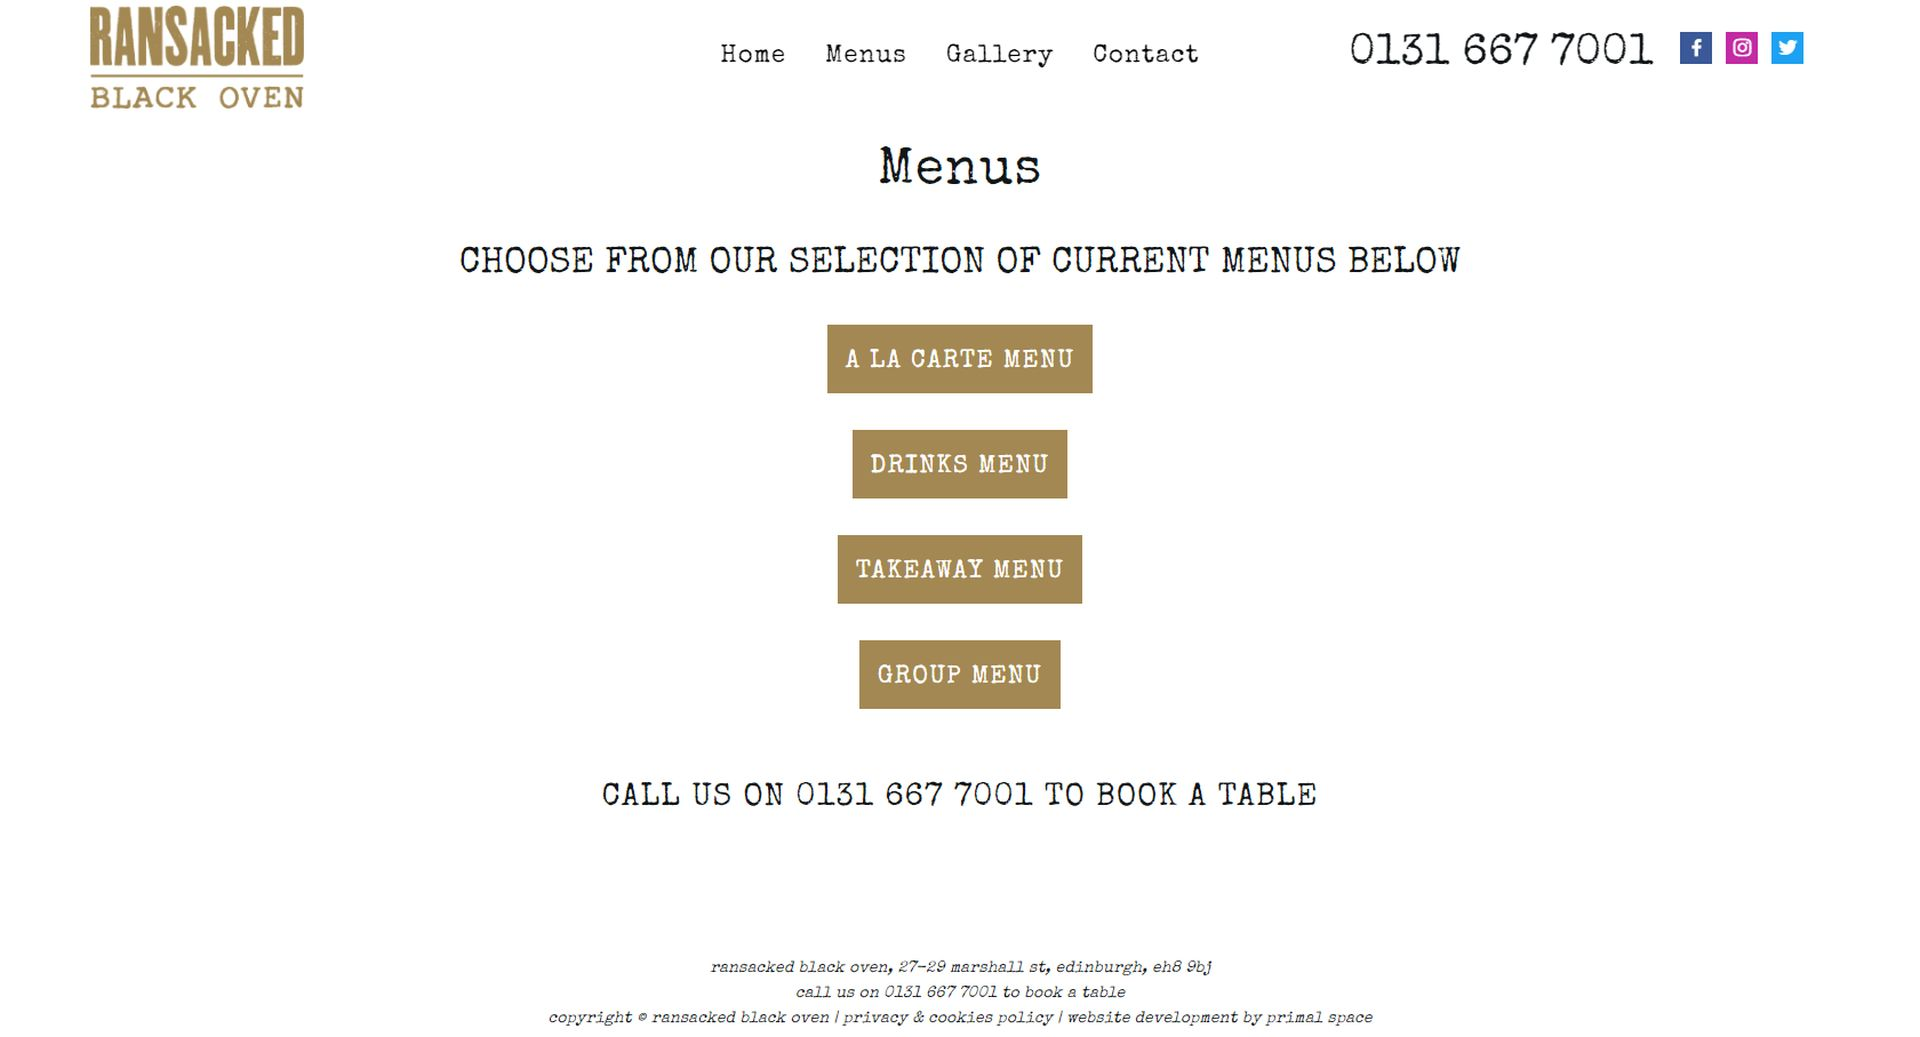 Ransacked Black Oven Website Design Menus